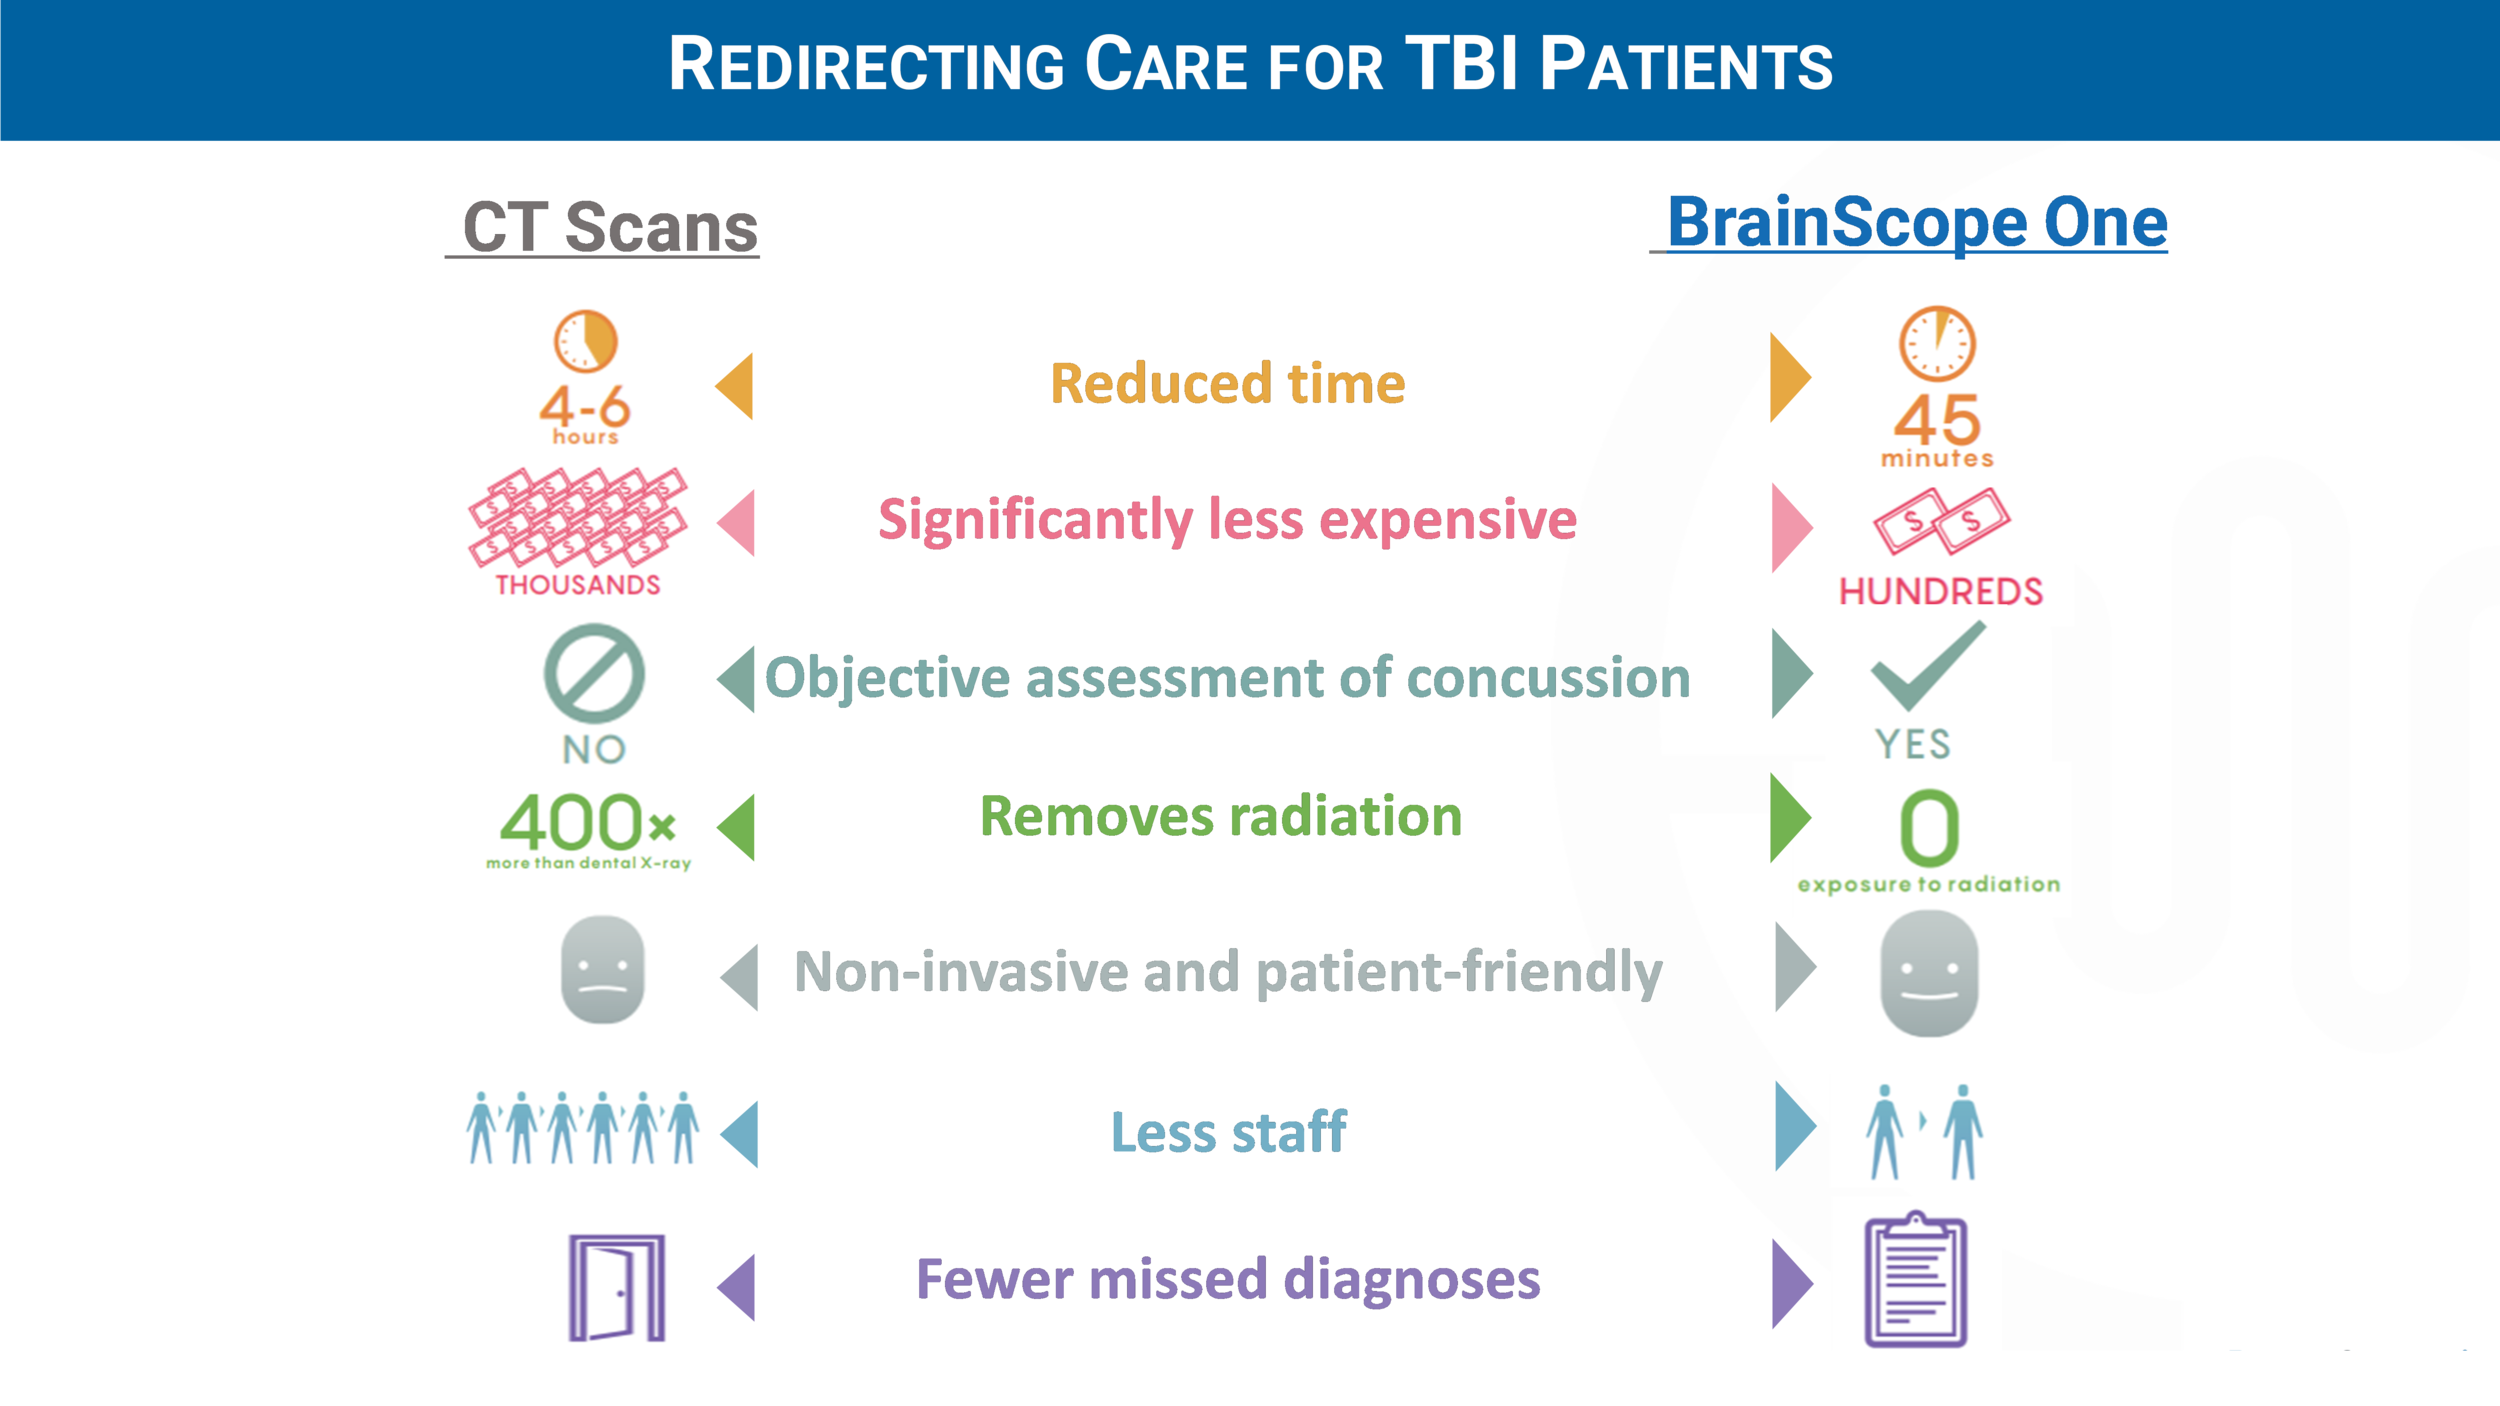 redirecting-care-for-tbi-patients.png